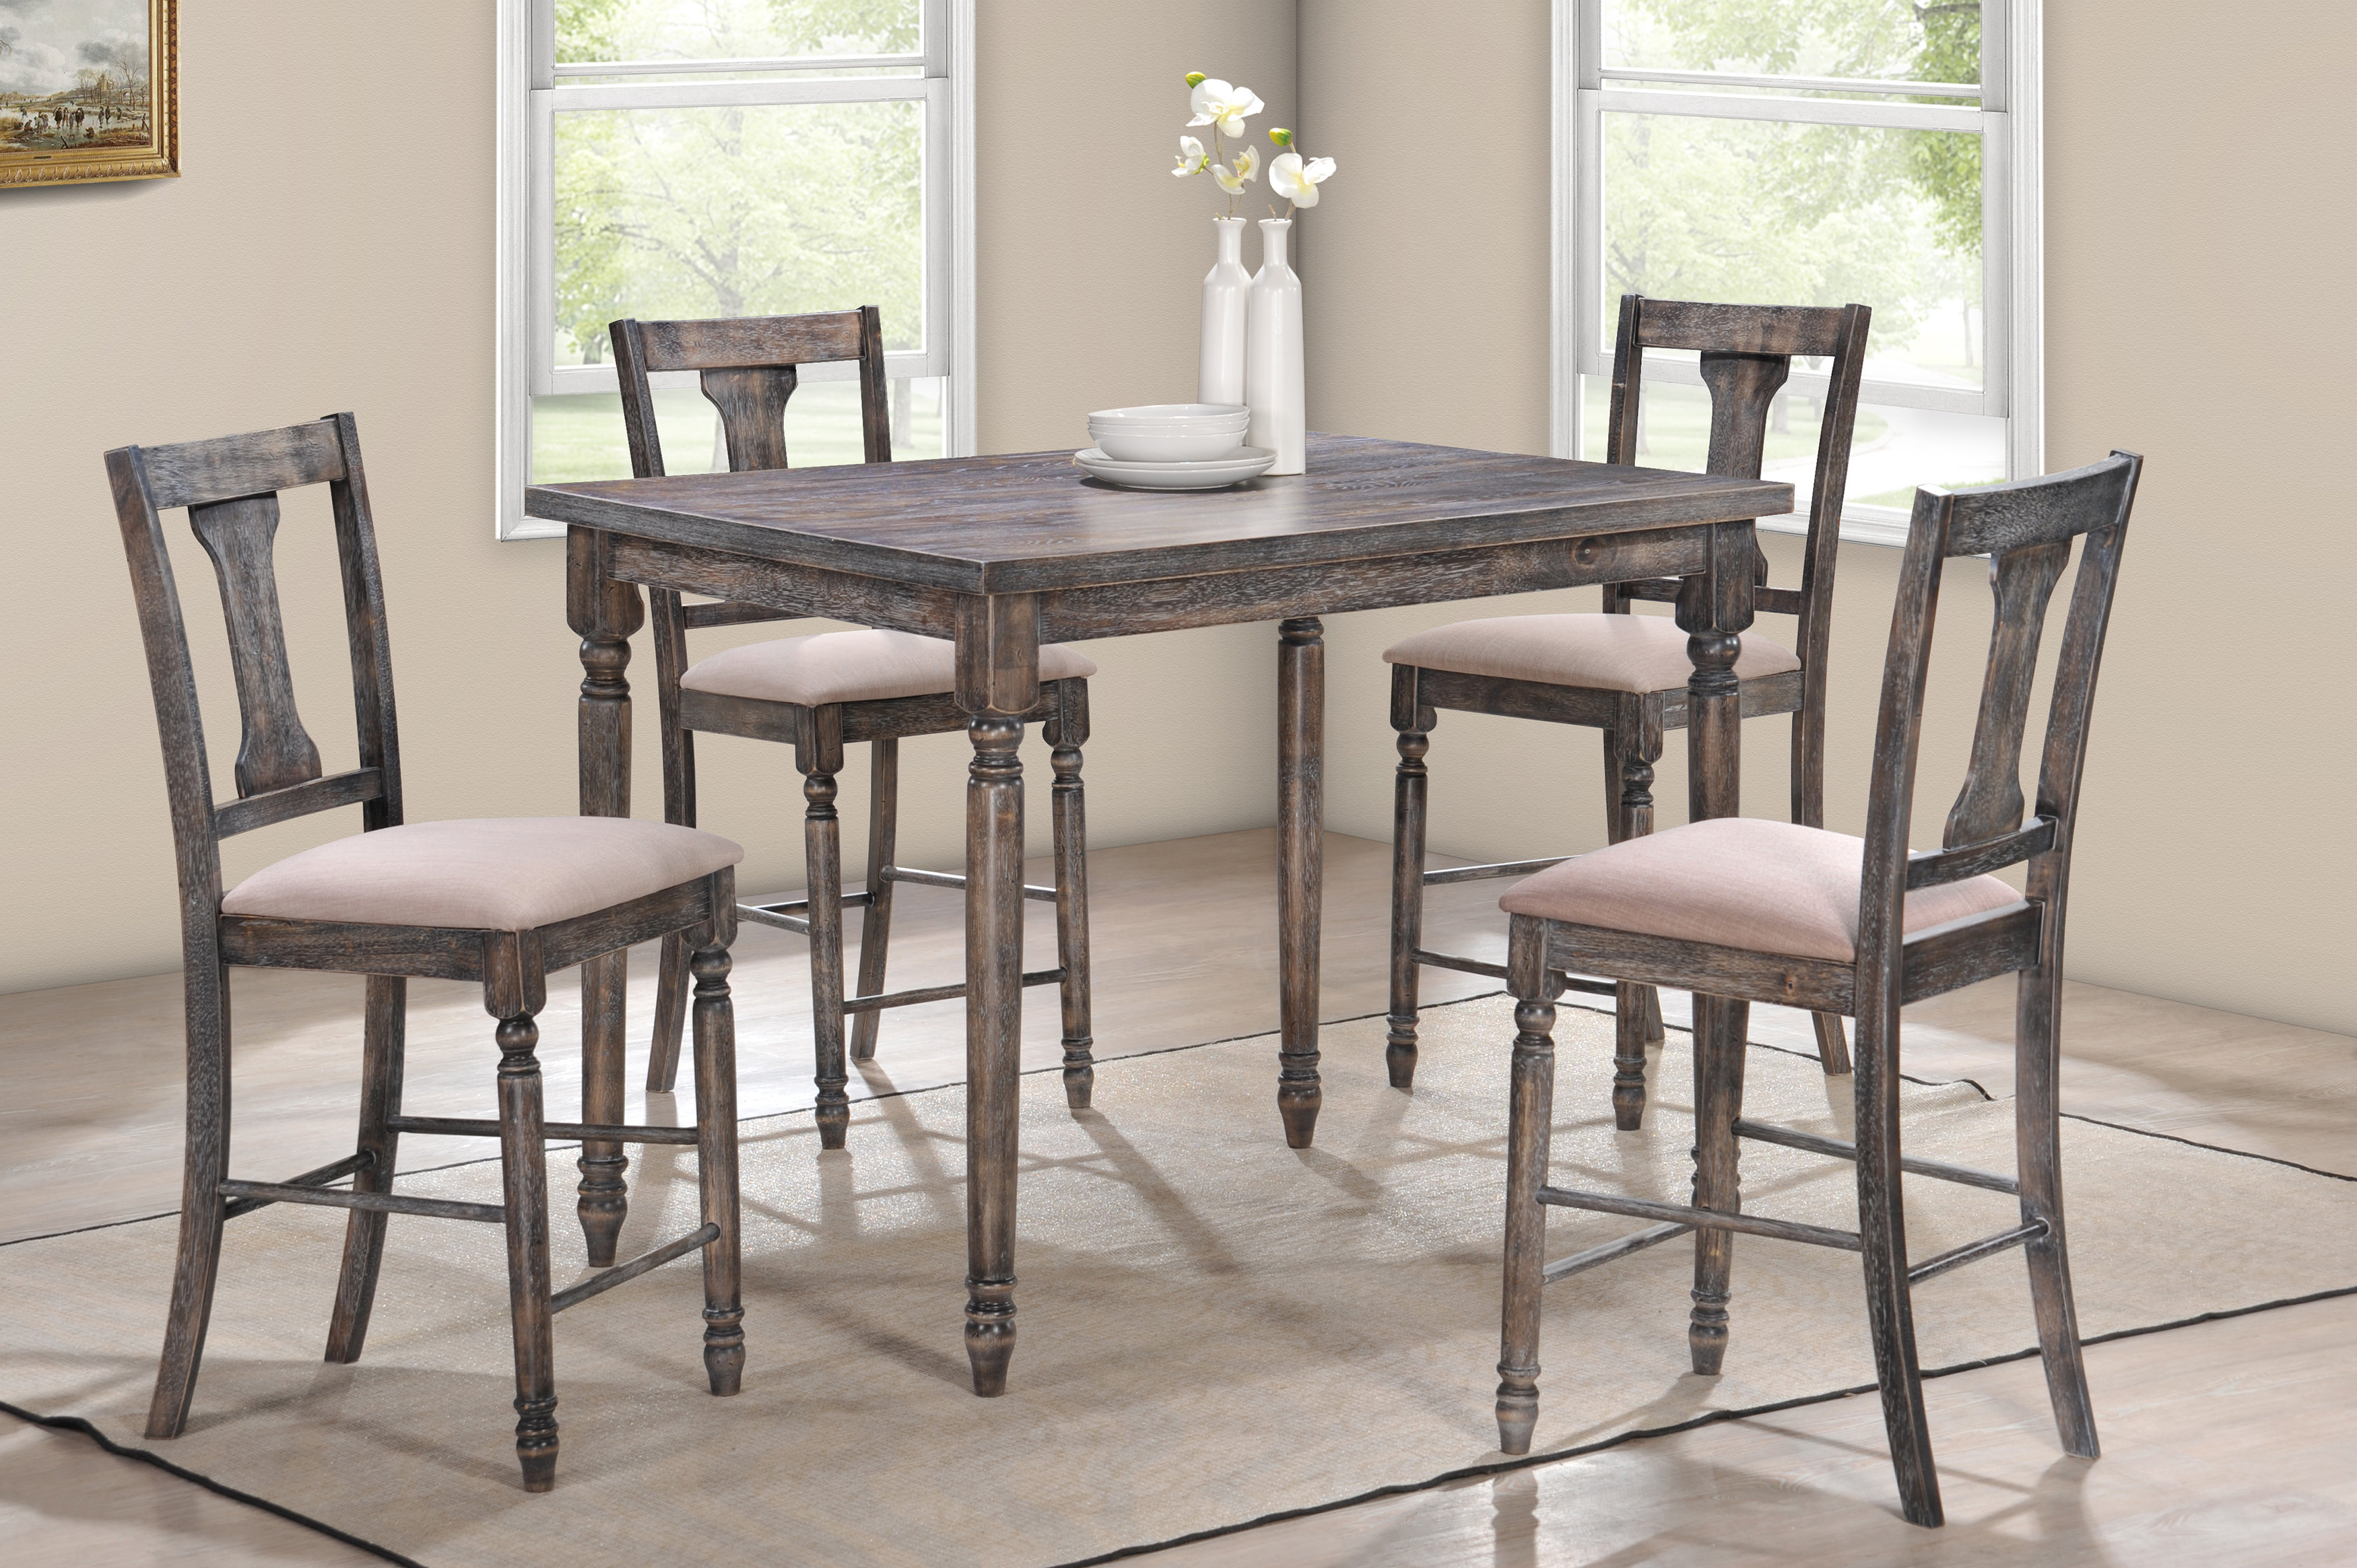 Joss & Main Within Favorite Goodman 5 Piece Solid Wood Dining Sets (Set Of 5) (View 12 of 25)